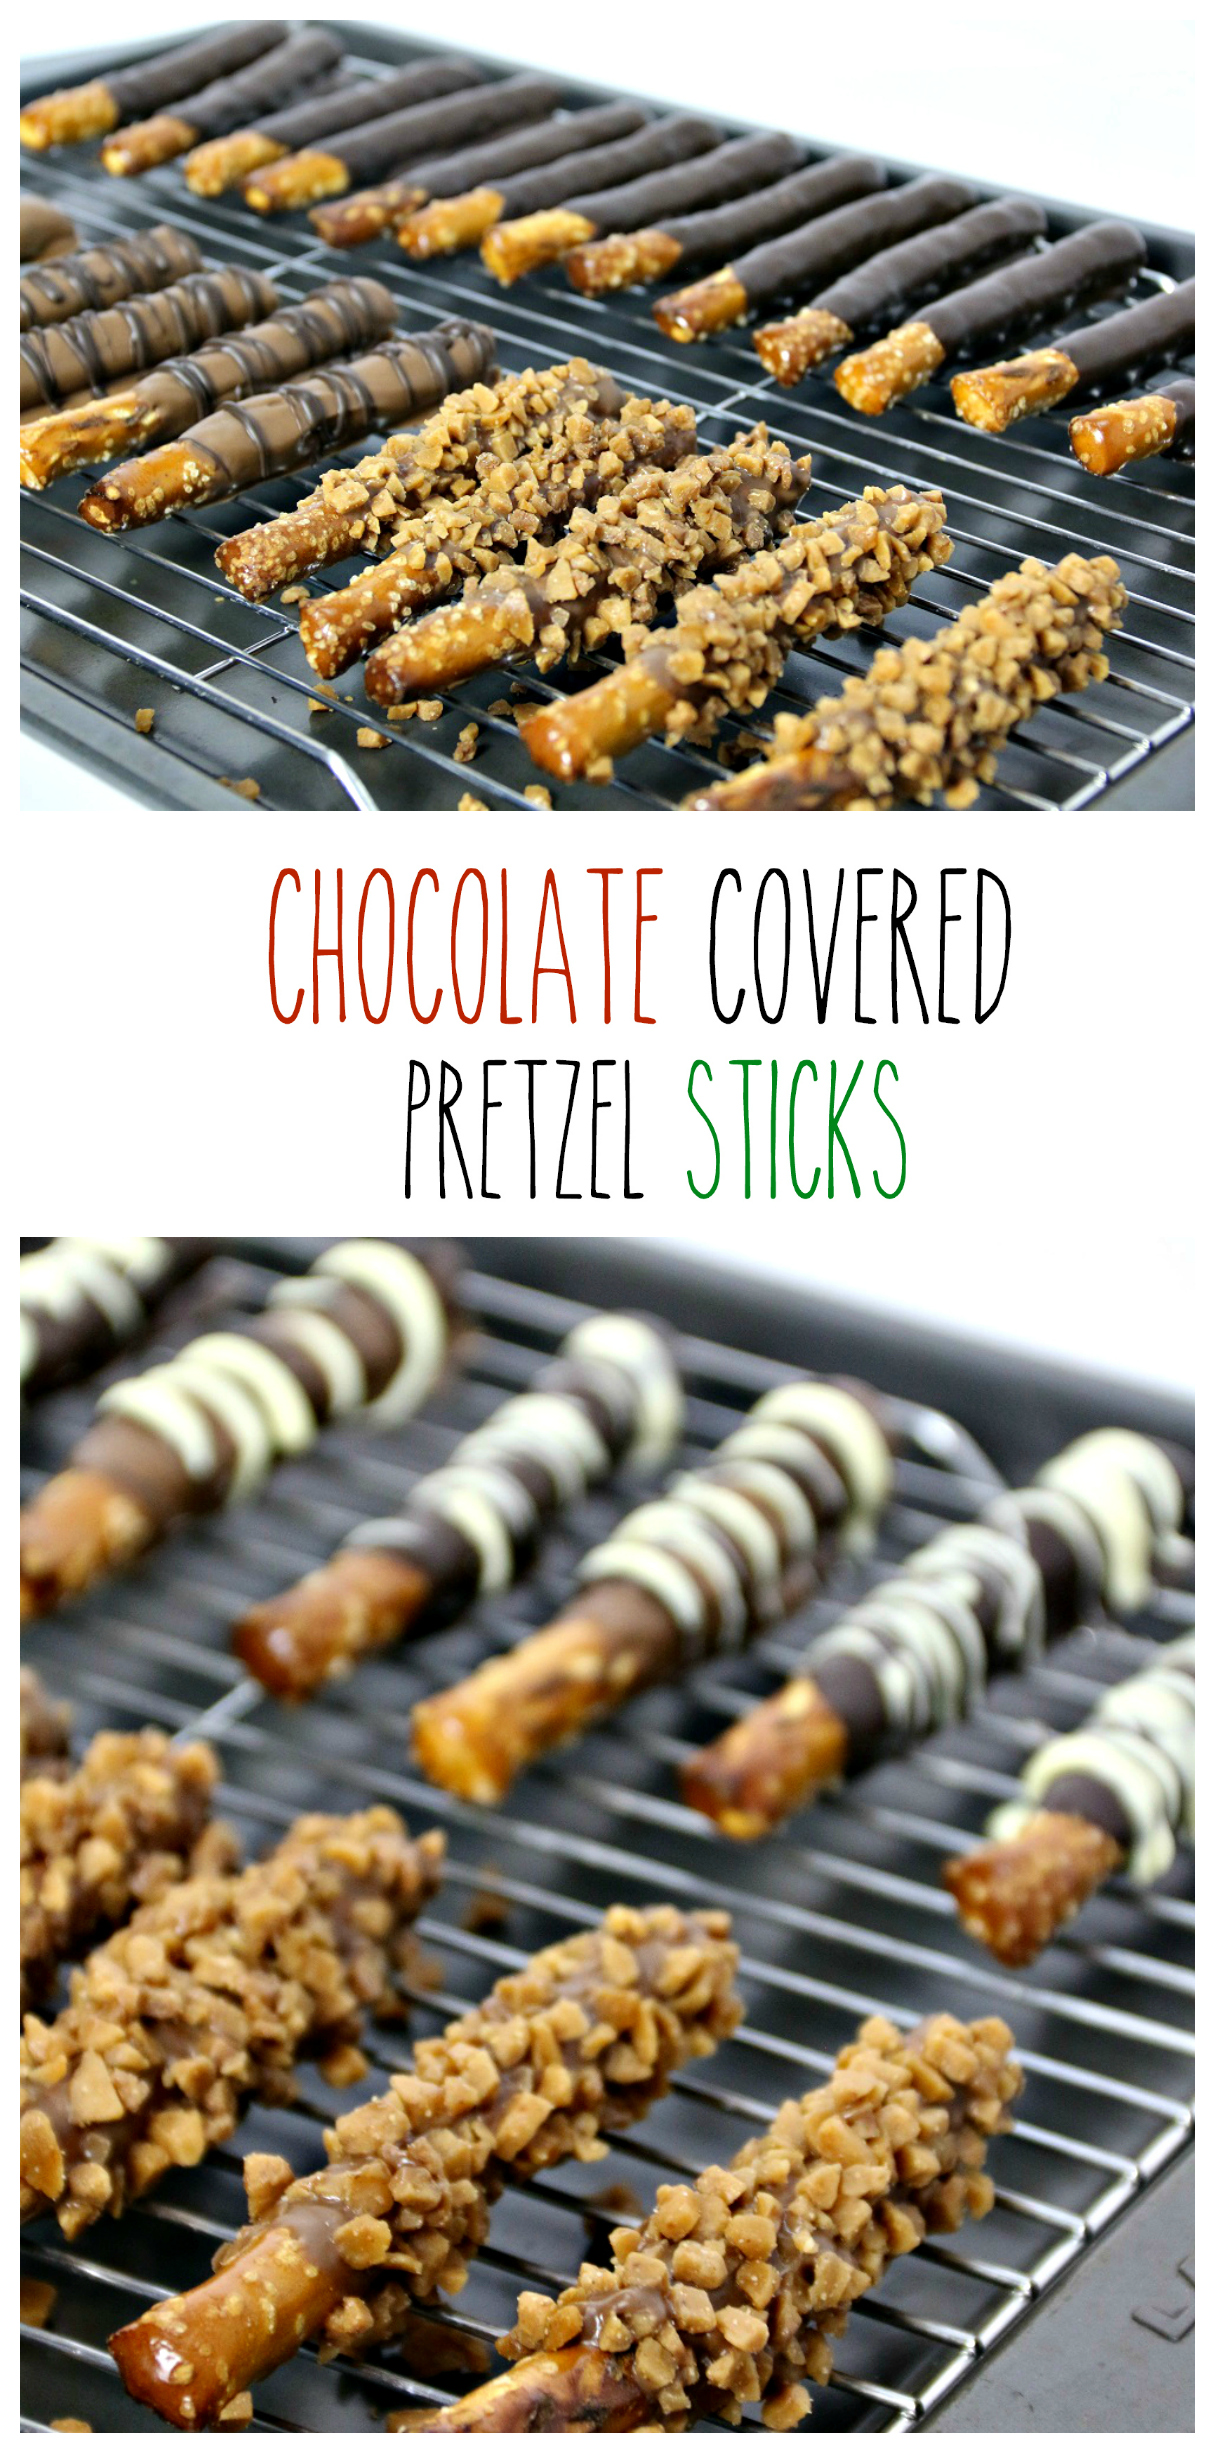 Chocolate covered Pretzels Sticks - The Northern Nest